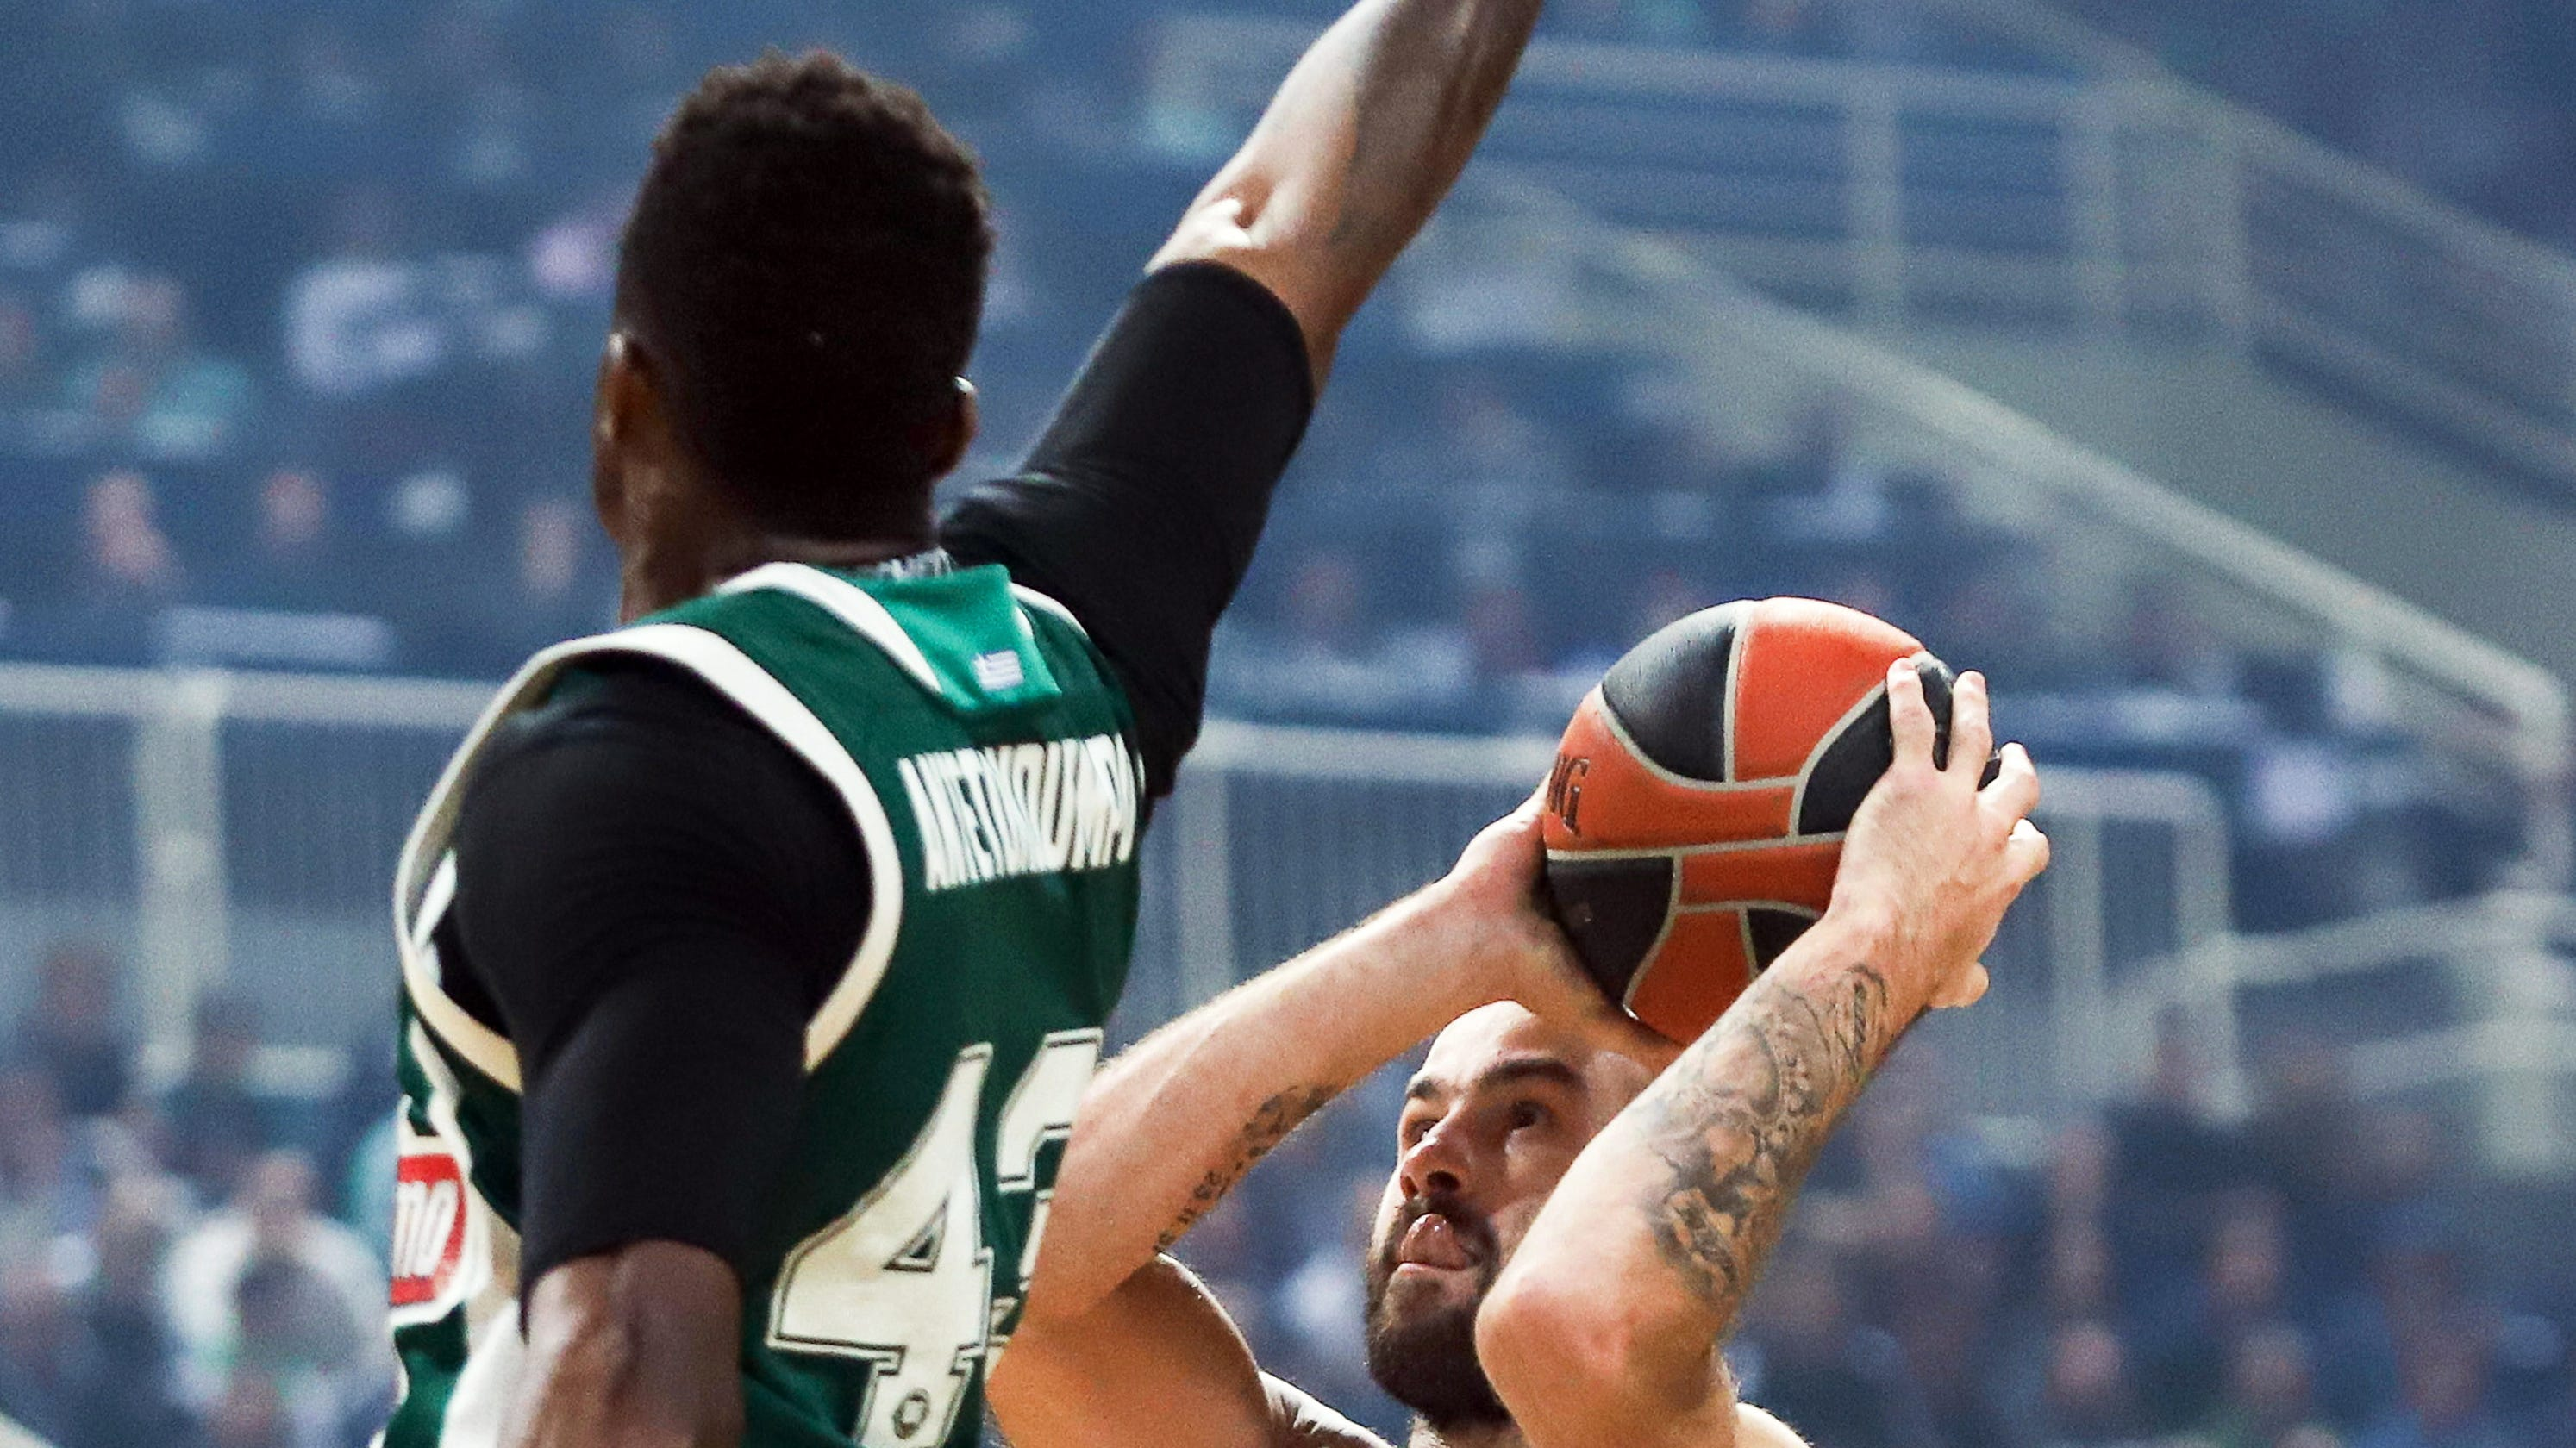 Giannis' brother Thanasis Antetokounmpo to sign with Bucks